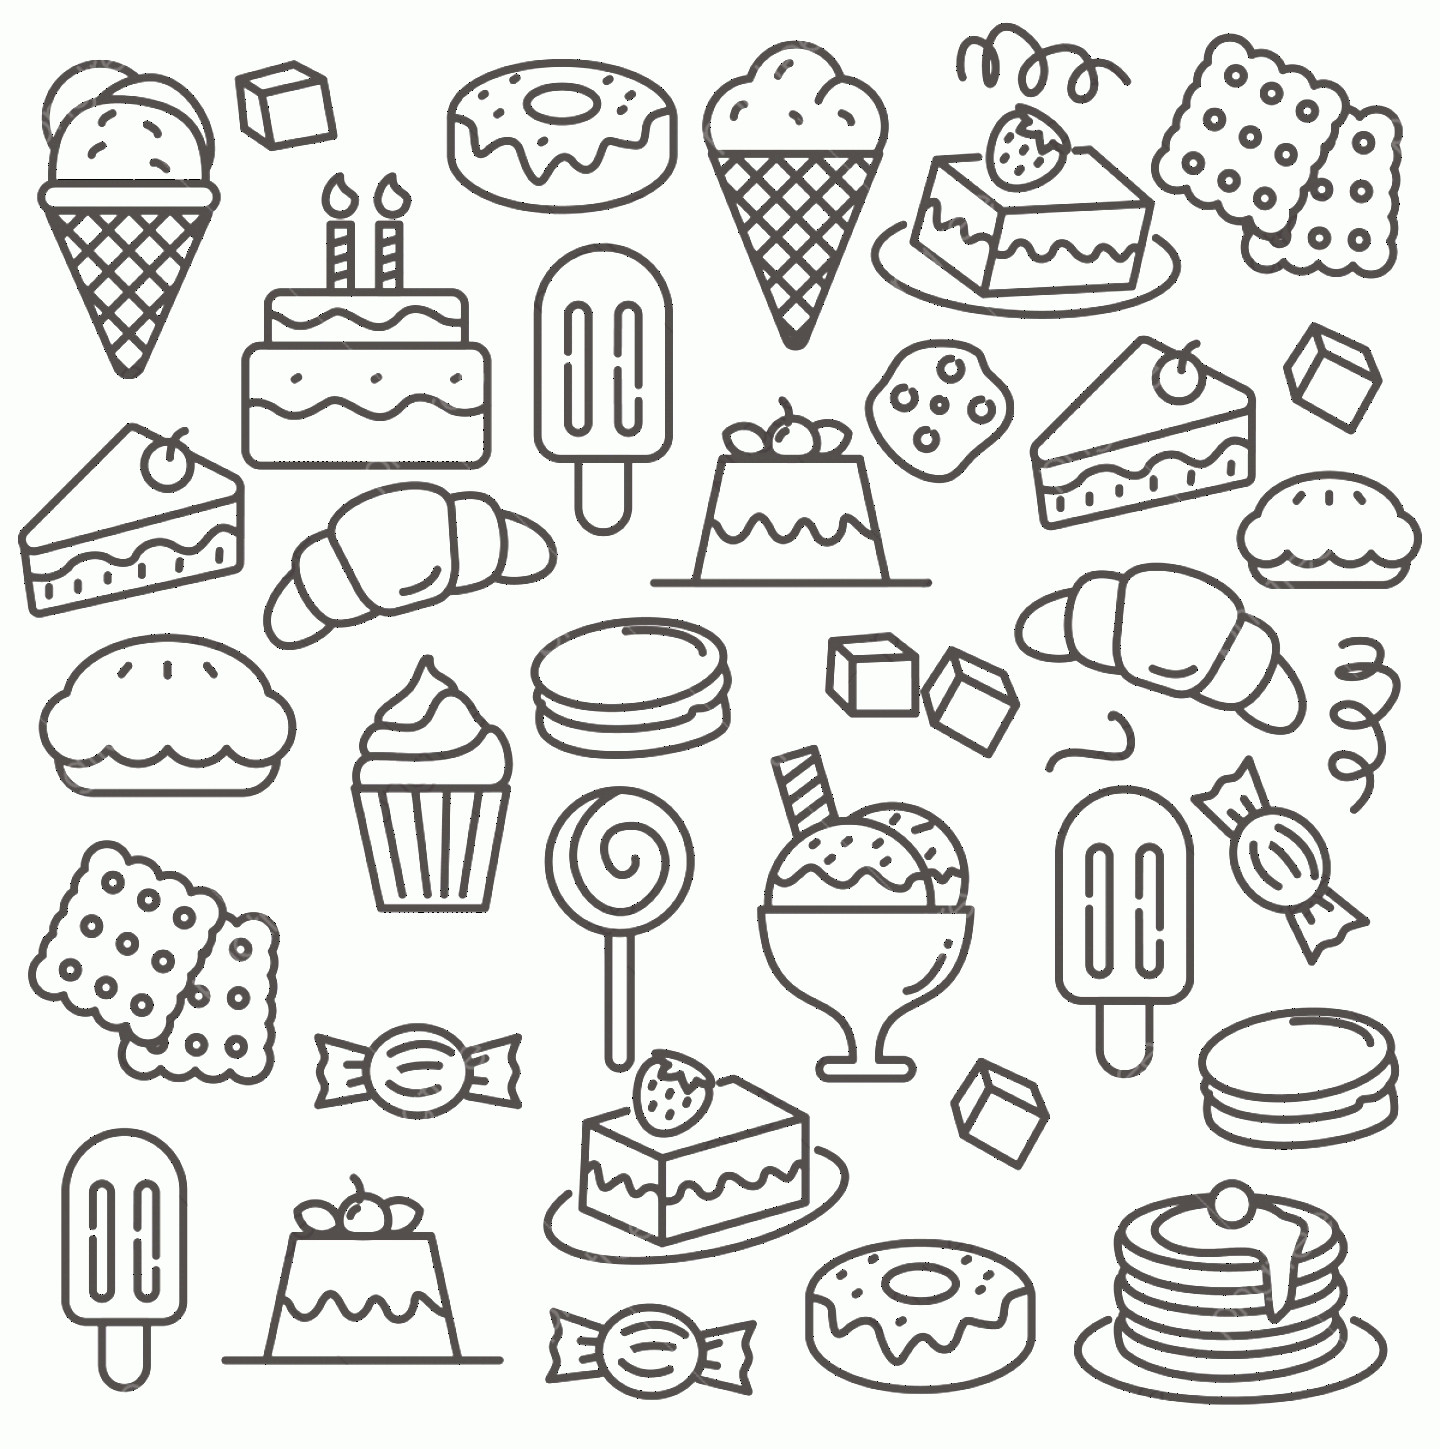 Vector Abstract Art Cake: Cake And Dessert Doodle Vector Suitable For Background Set Of Cake And Dessert Vector Illustration With Line Design